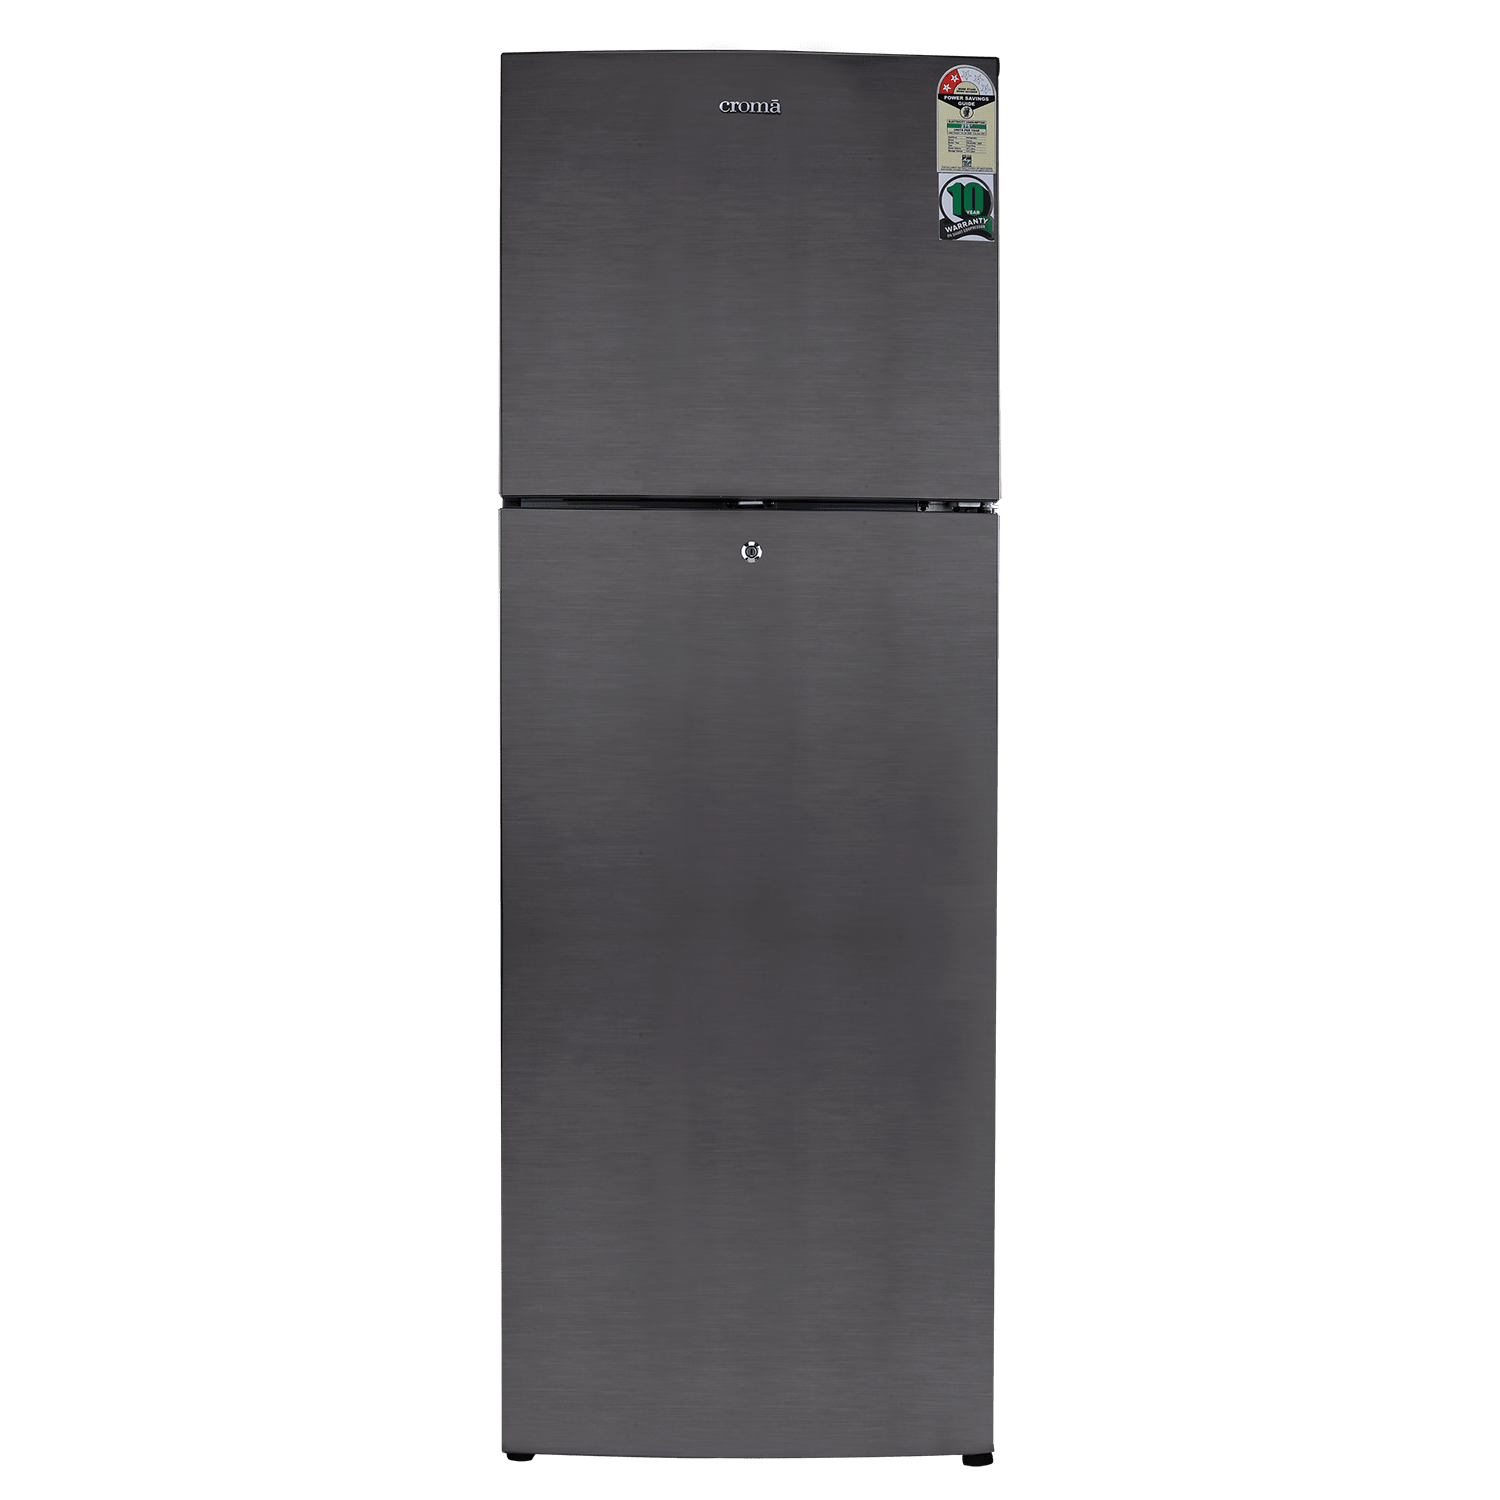 Croma 347 Litres 2 Star Frost Free Double Door Refrigerator (Quick Chill Technology, CRAR2404, Silver)